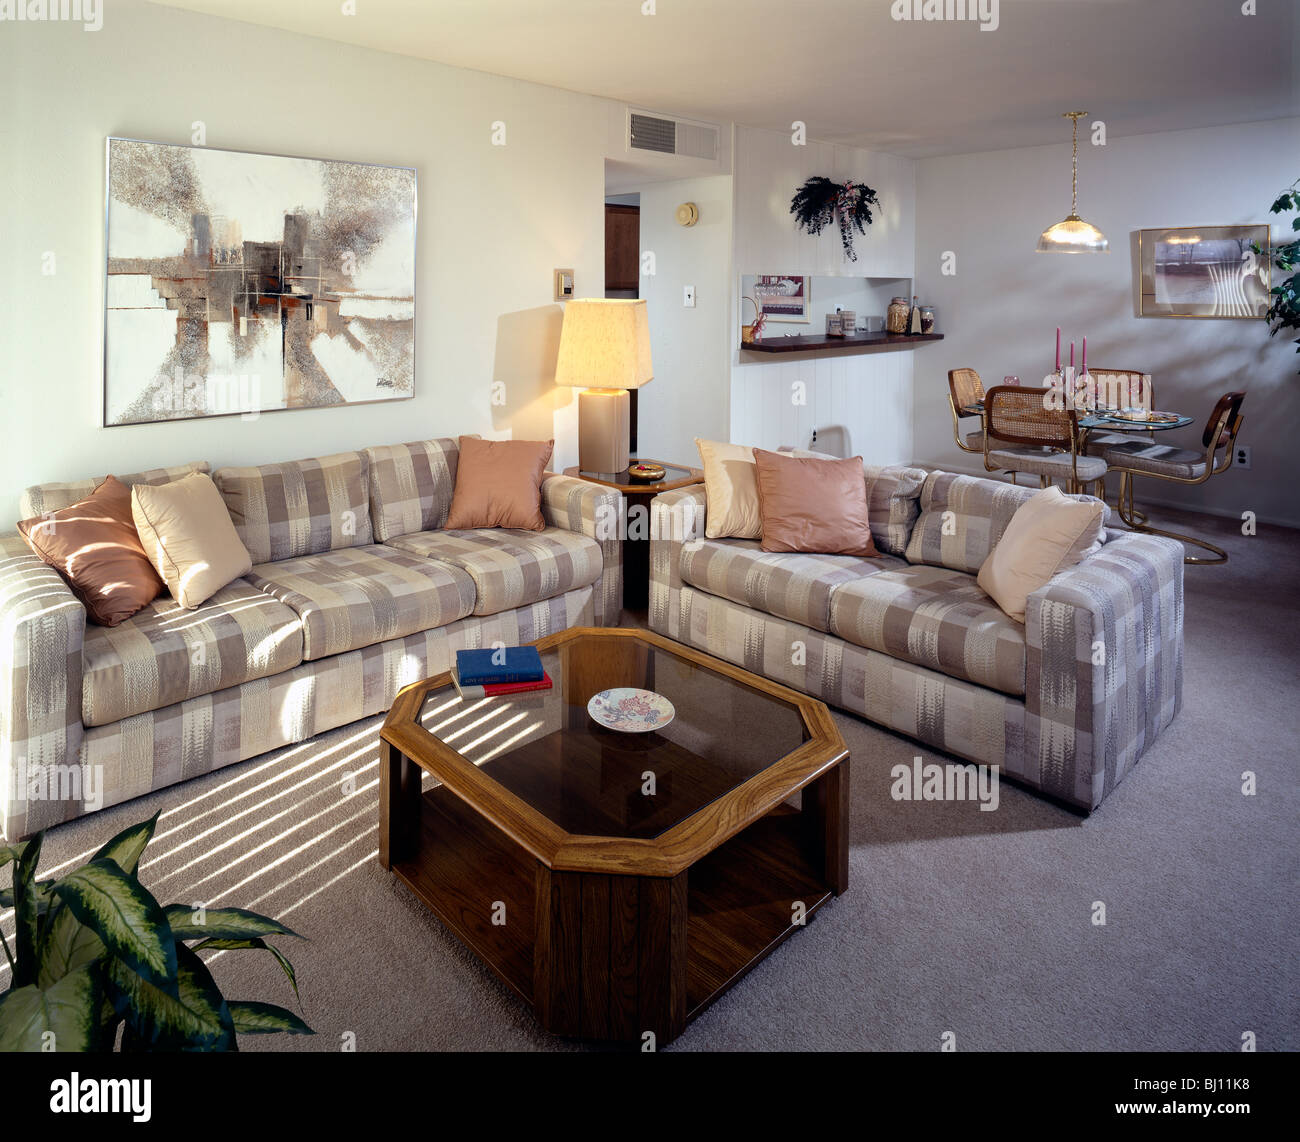 living room in an upscale home in suburban philadelphia